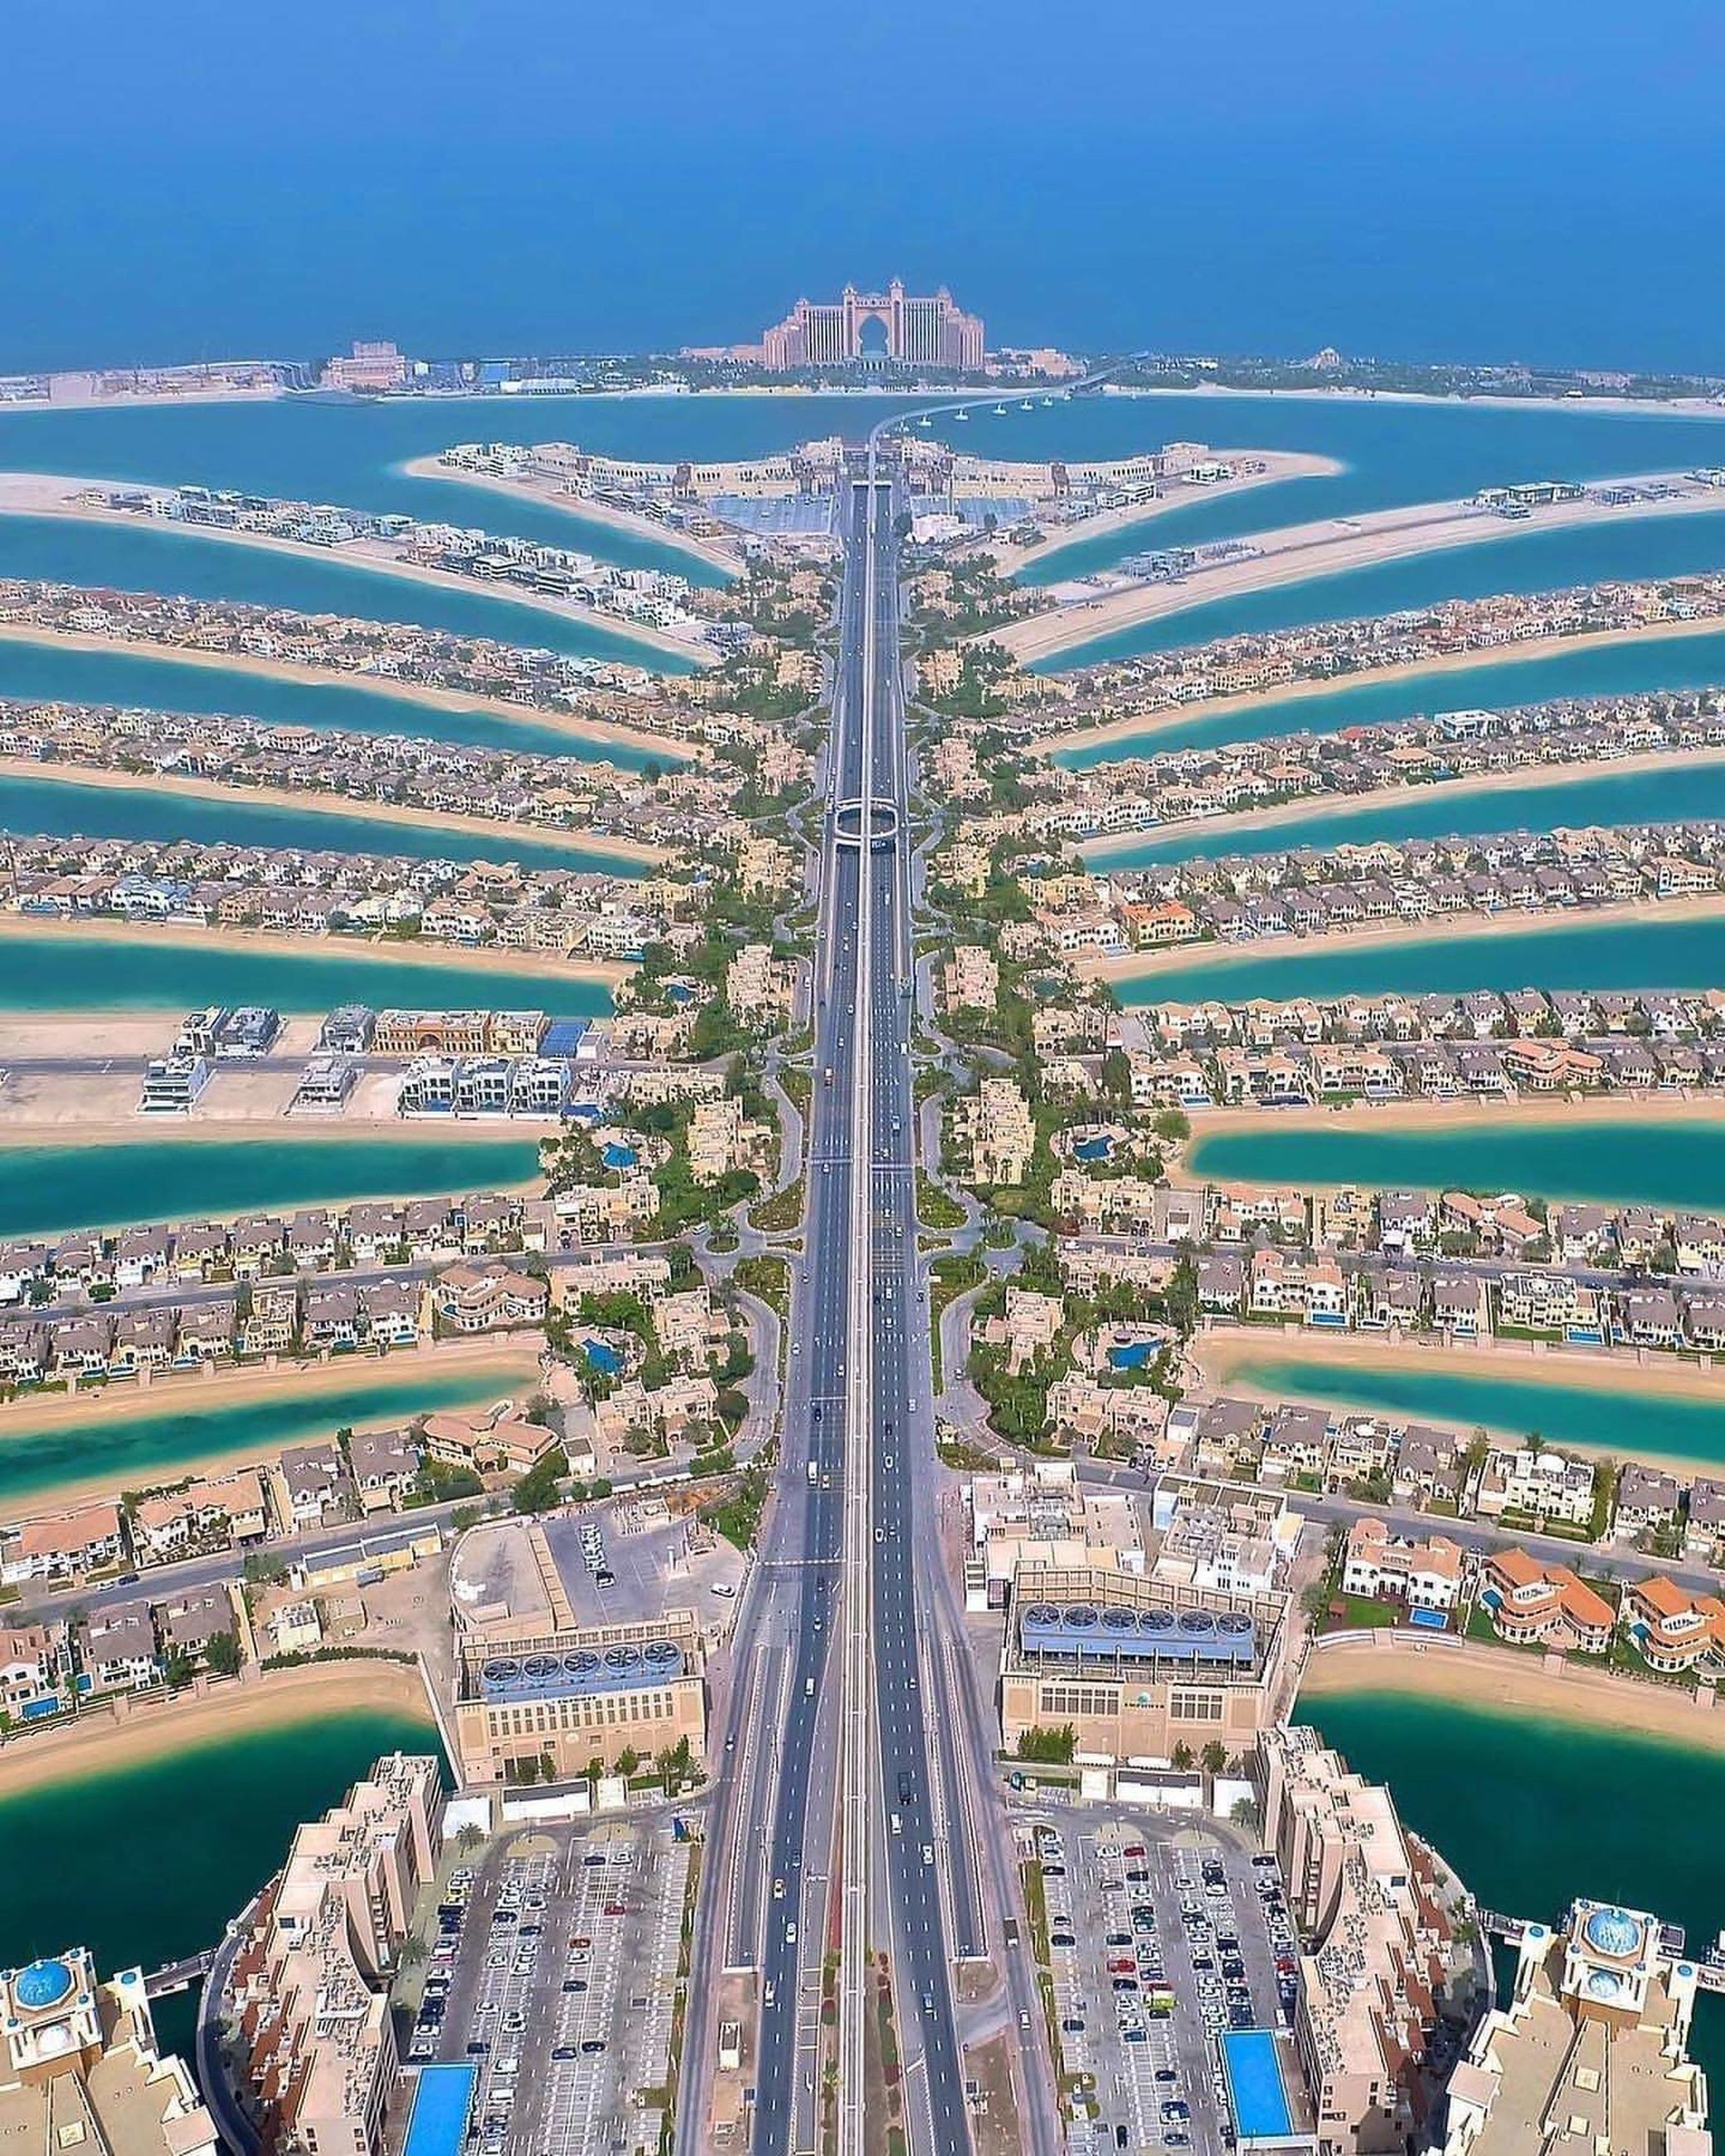 architecture, built structure, city, building exterior, cityscape, high angle view, day, transportation, no people, nature, building, outdoors, aerial view, travel destinations, residential district, connection, road, sky, skyscraper